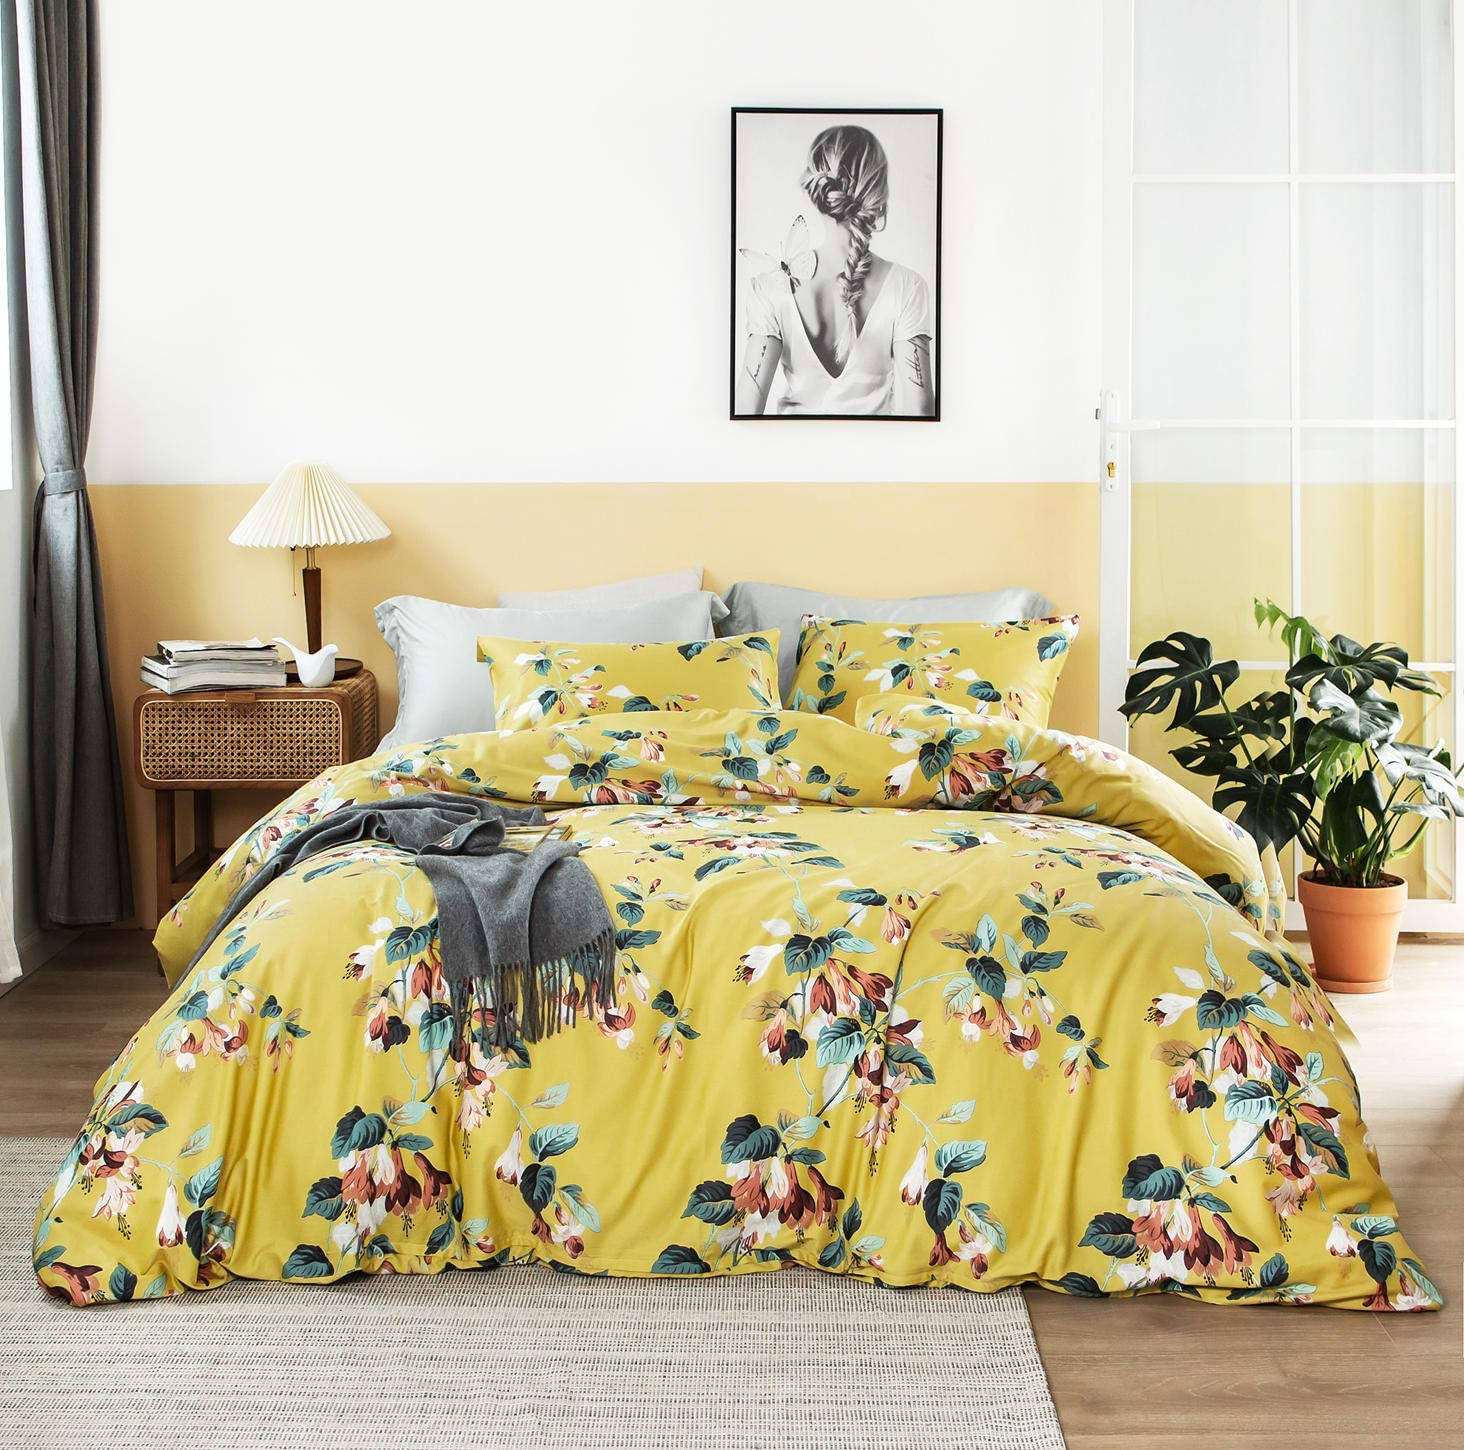 SUSYBAO 3 Piece Duvet Cover Set 100% Egyptian Cotton Yellow Queen Size Green Tree Leaves Bedding Set 1 Farmhouse Floral Duvet Cover with Zipper Ties 2 Pillowcases Luxury Quality Super Soft Comfortable